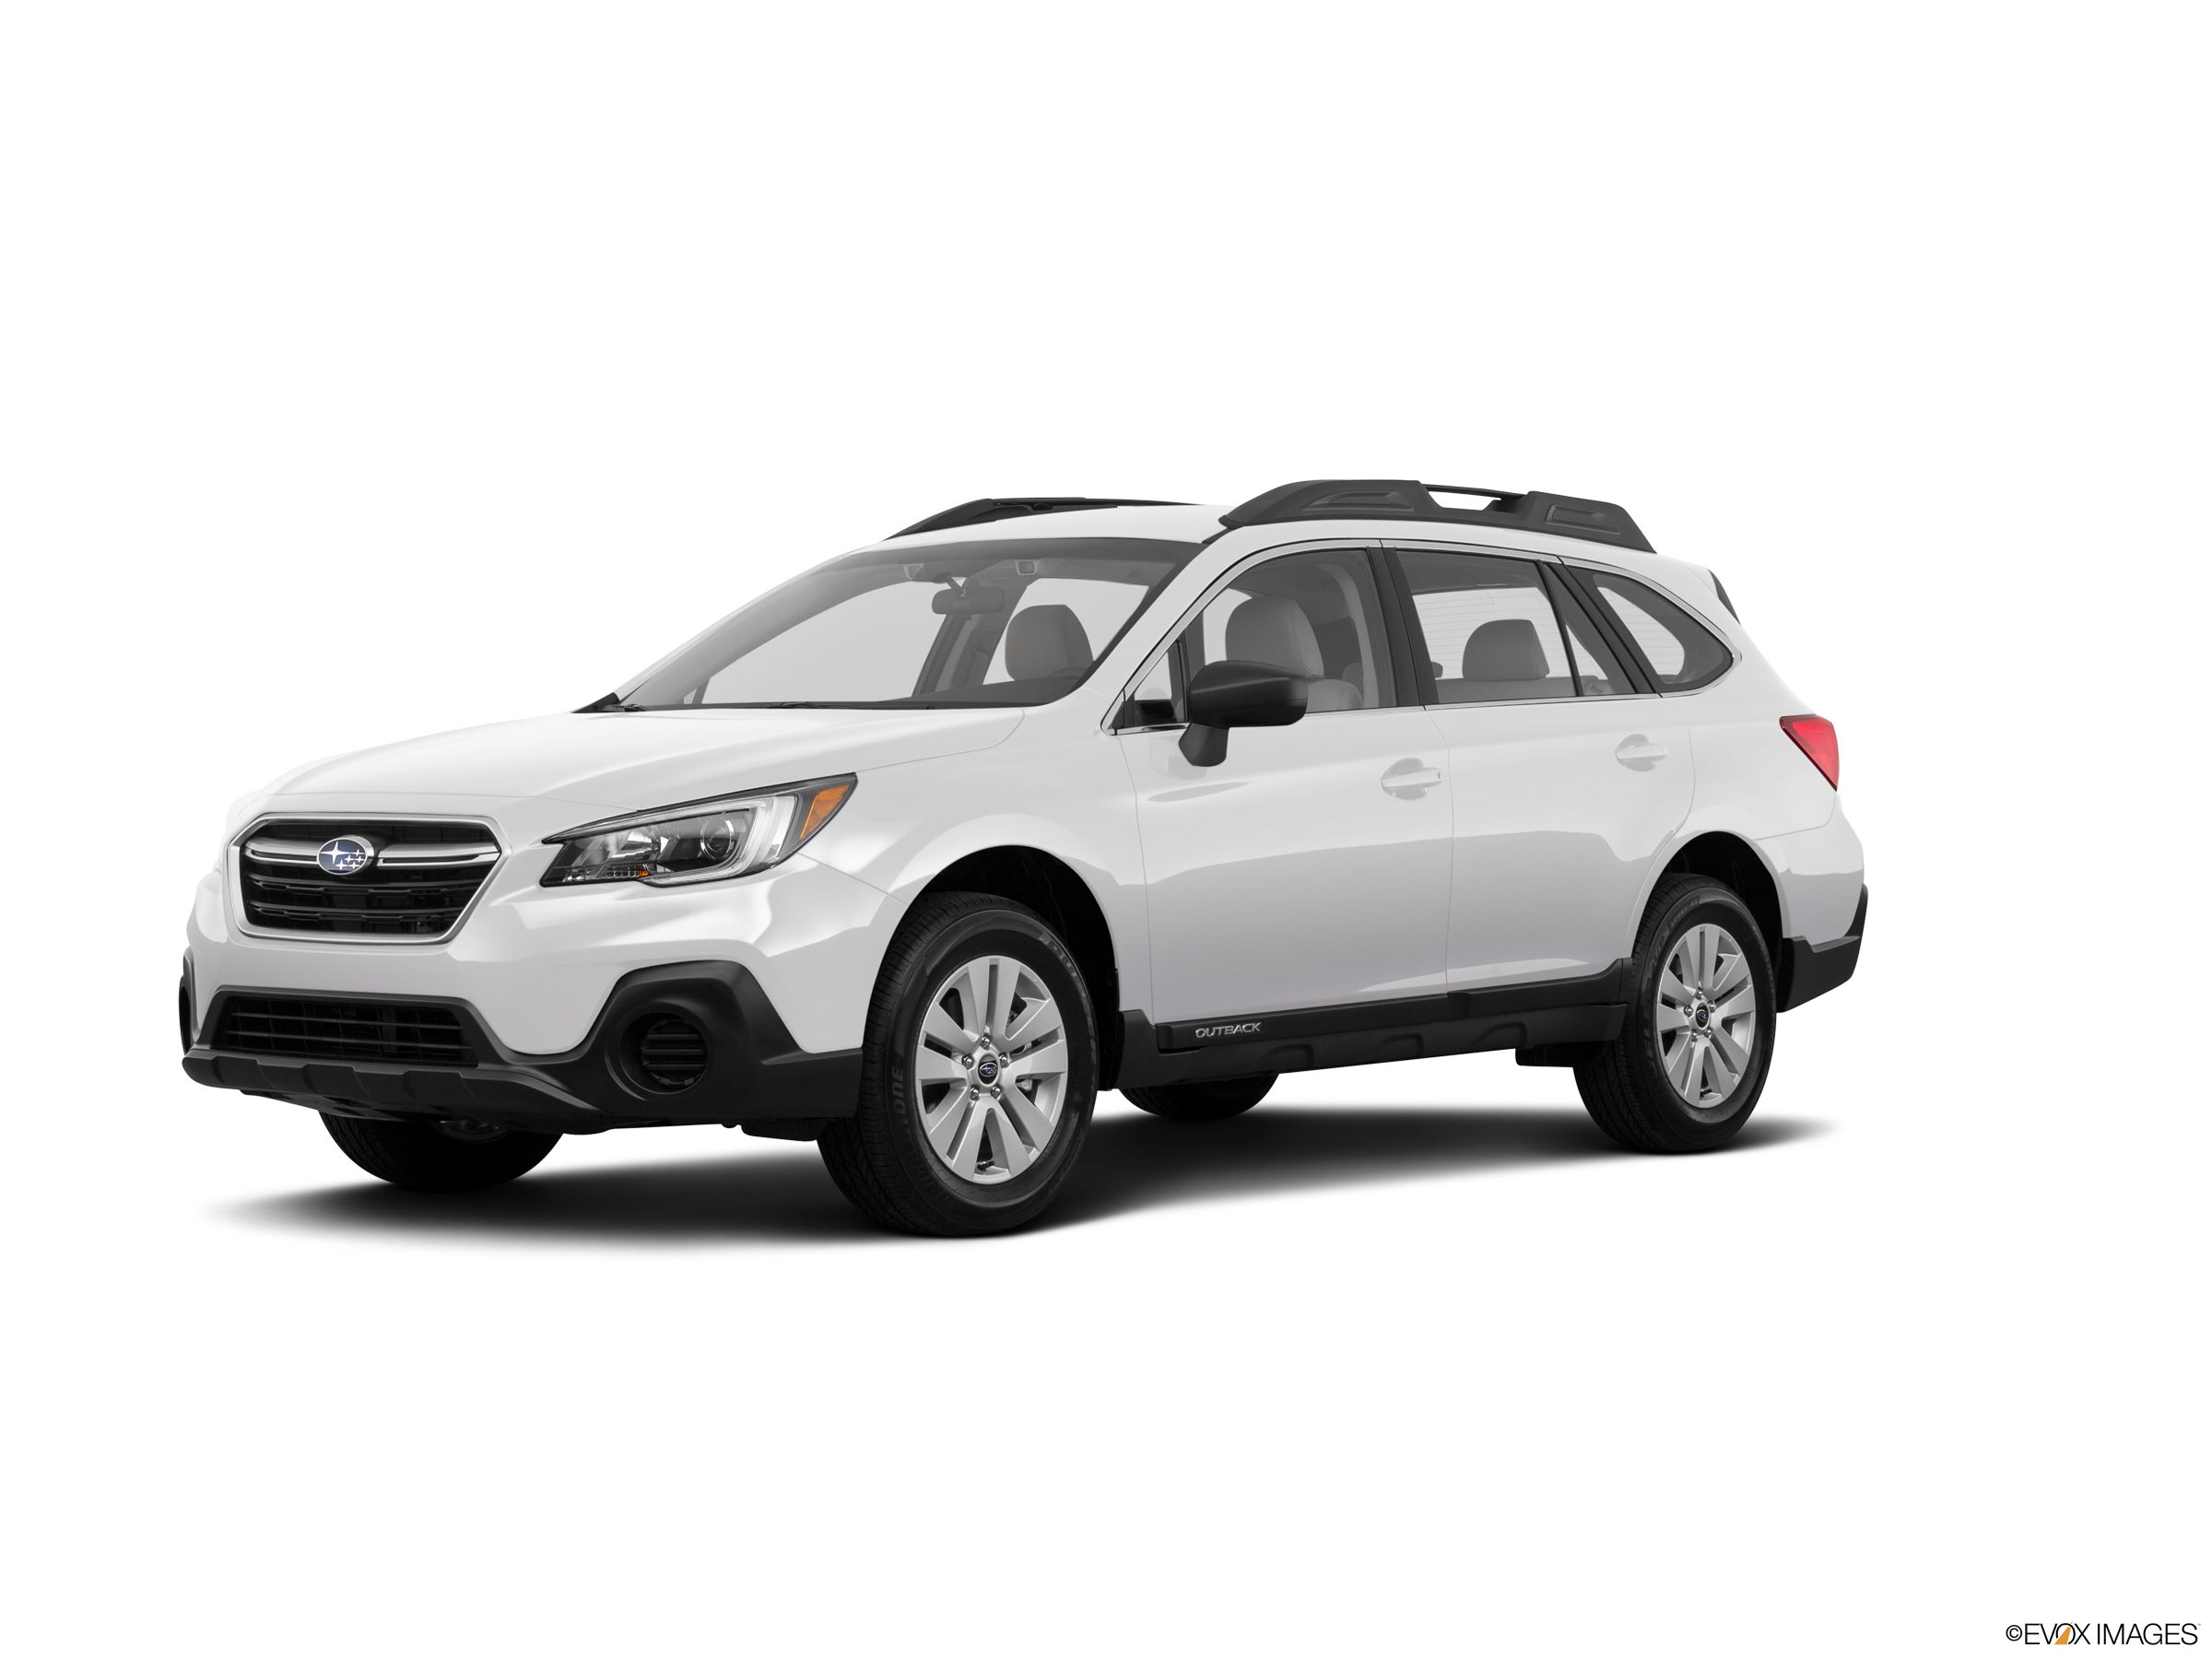 2019 Subaru Outback Values Cars For Sale Kelley Blue Book